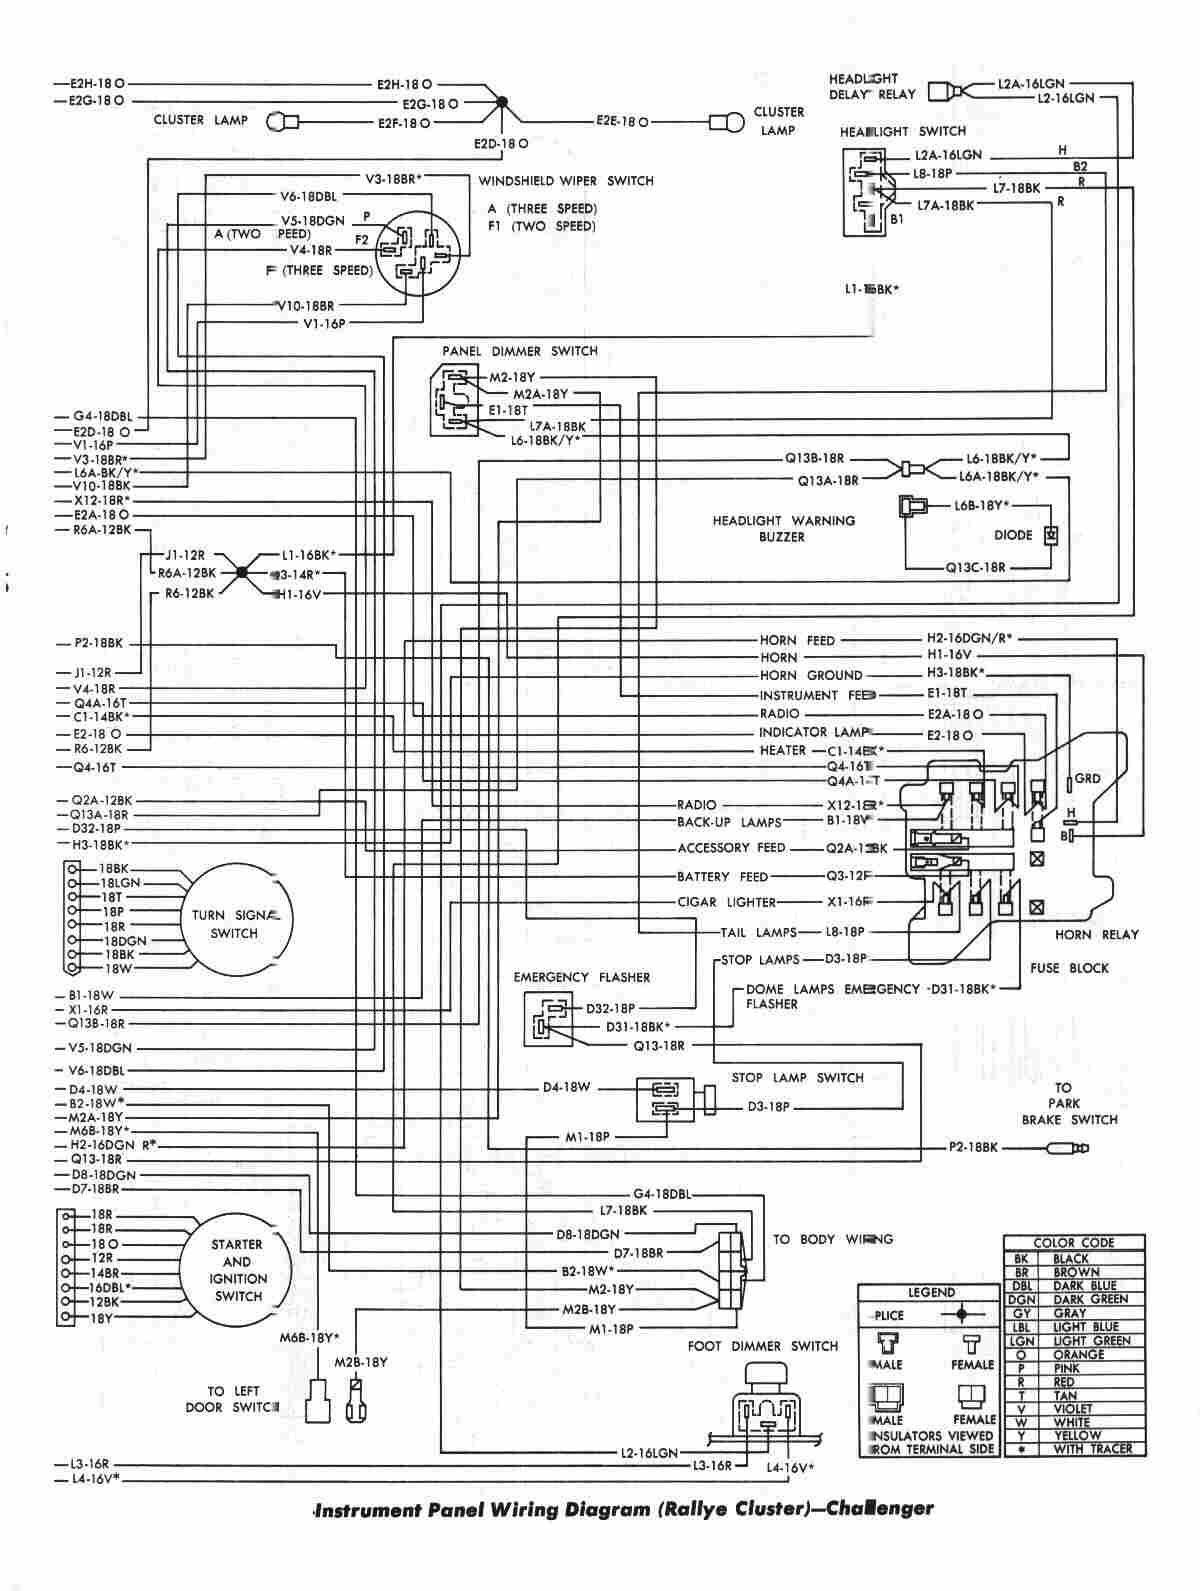 2011 Dodge Caravan Wiring Diagram 2003 Dodge 3500 Headlight Fuse Box Location Dodyjm Nescafe Jeanjaures37 Fr